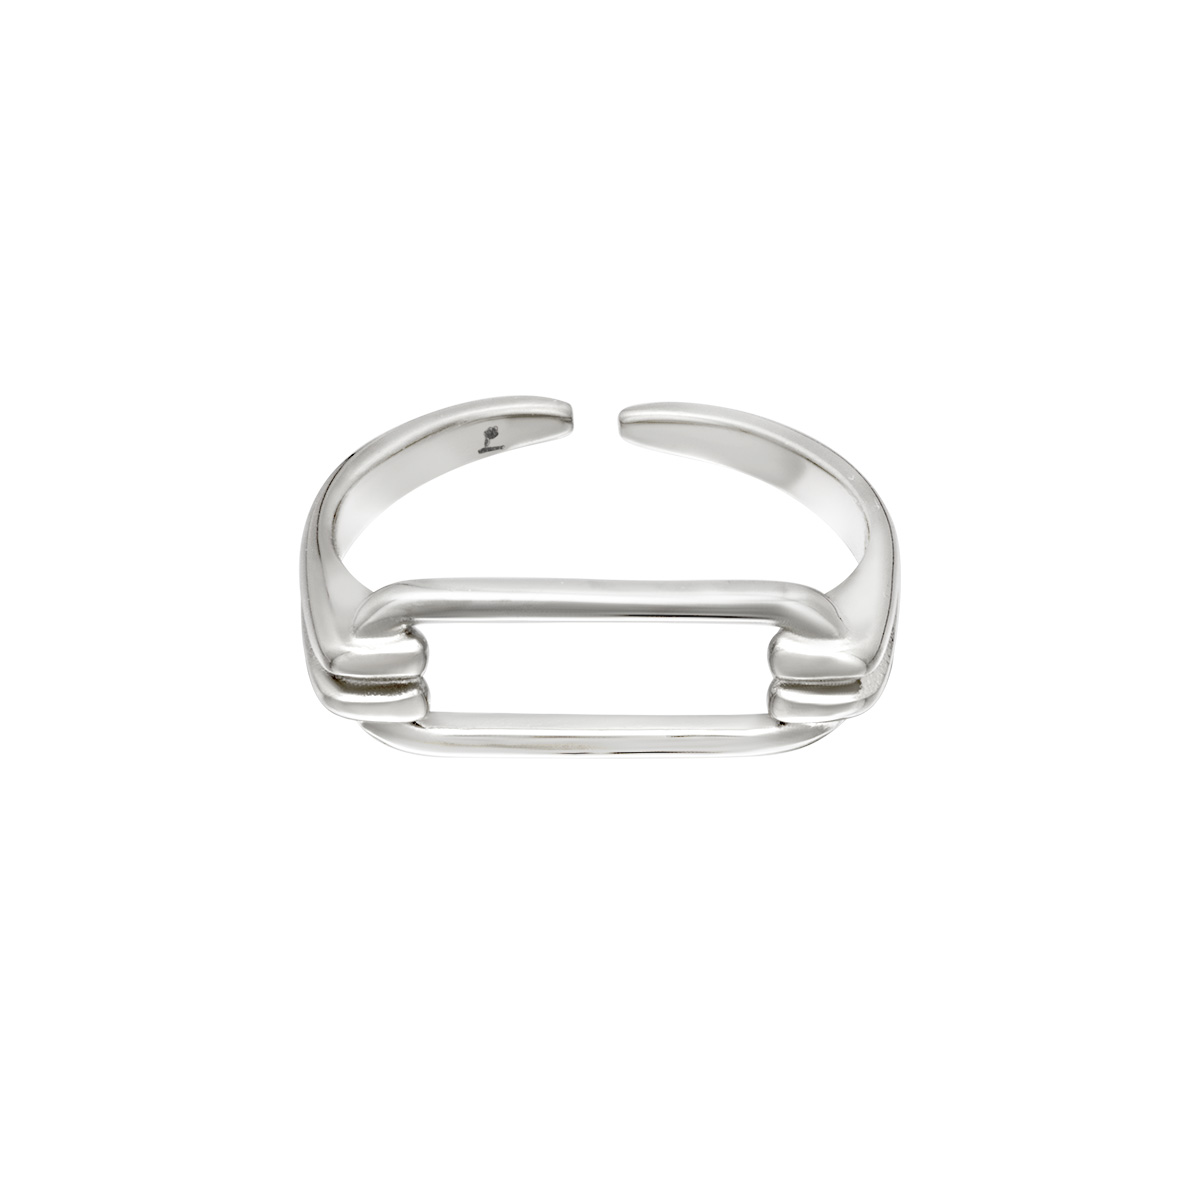 Geometrically shaped stainless steel ring